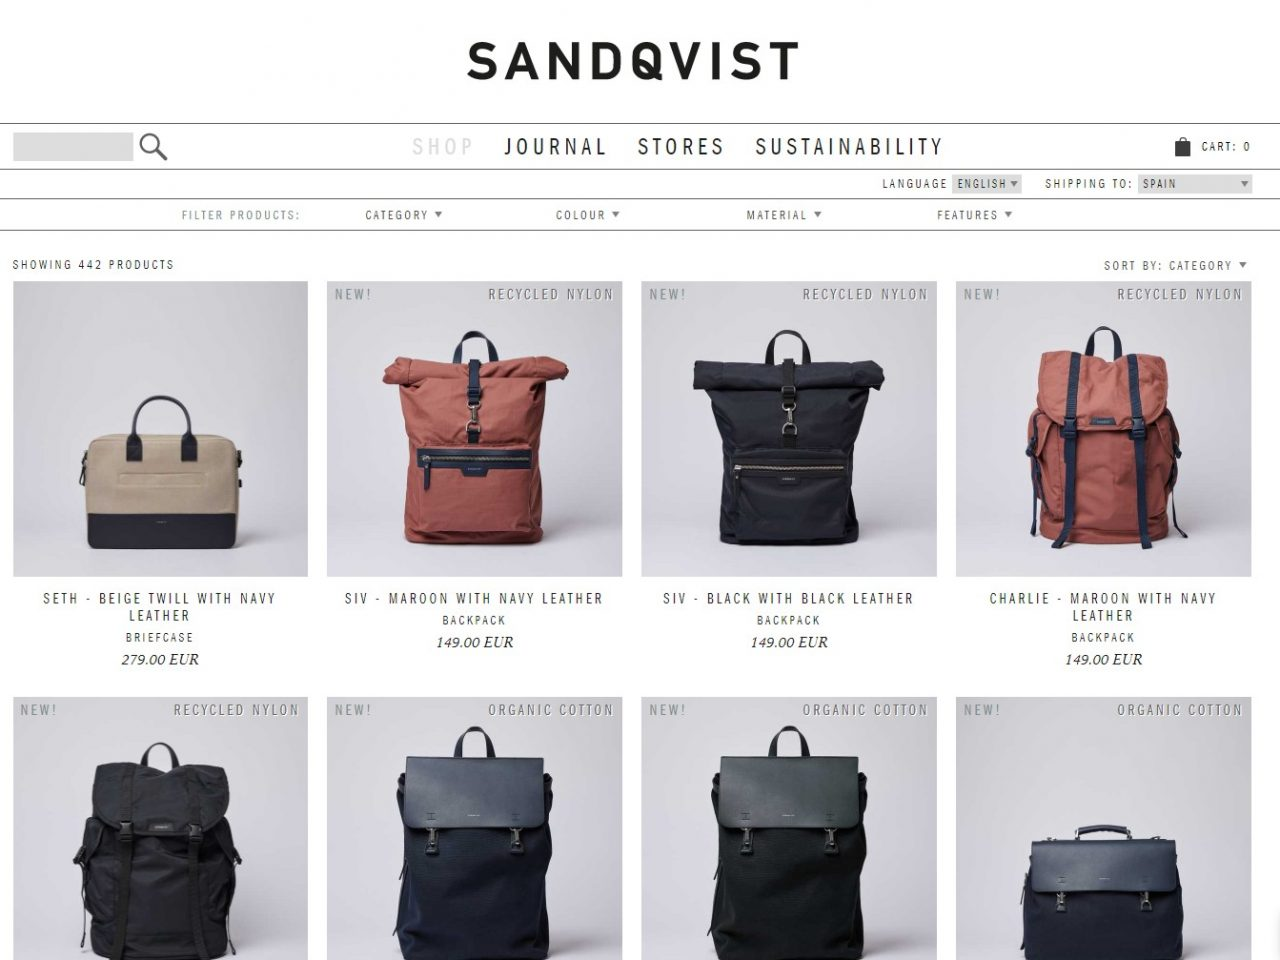 Sandqvist brand produce backpacks, bags and accessories